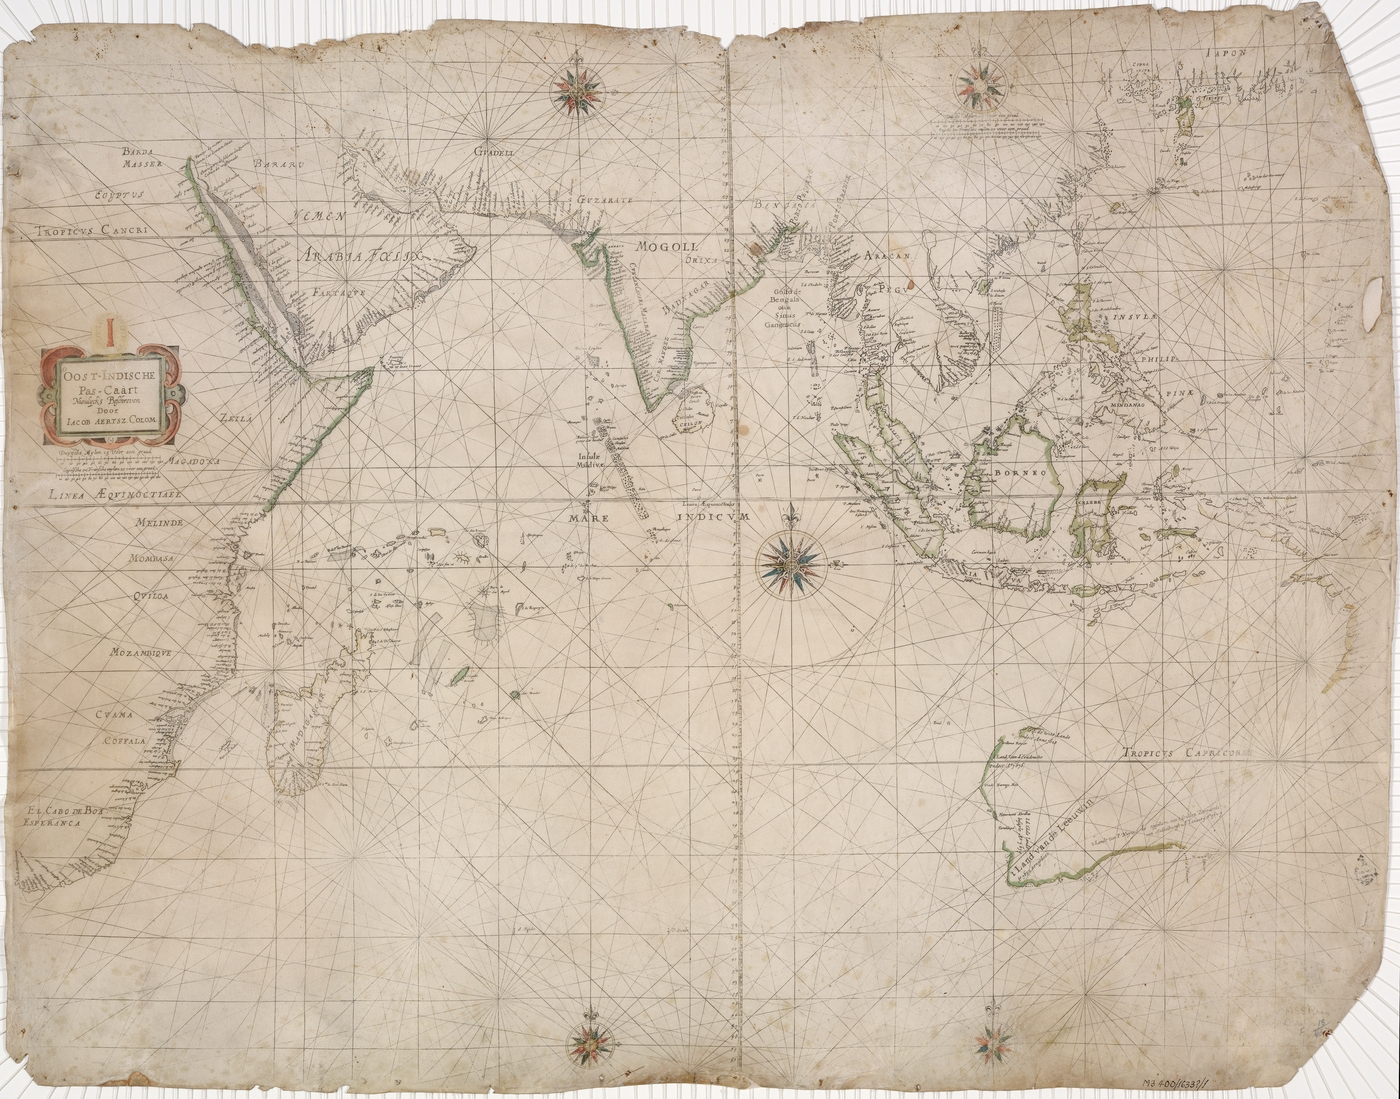 A historical map with worn edges, showing the east coast of Africa, West Coast of Australia and large parts of Asia. The rest of the world is unmapped.